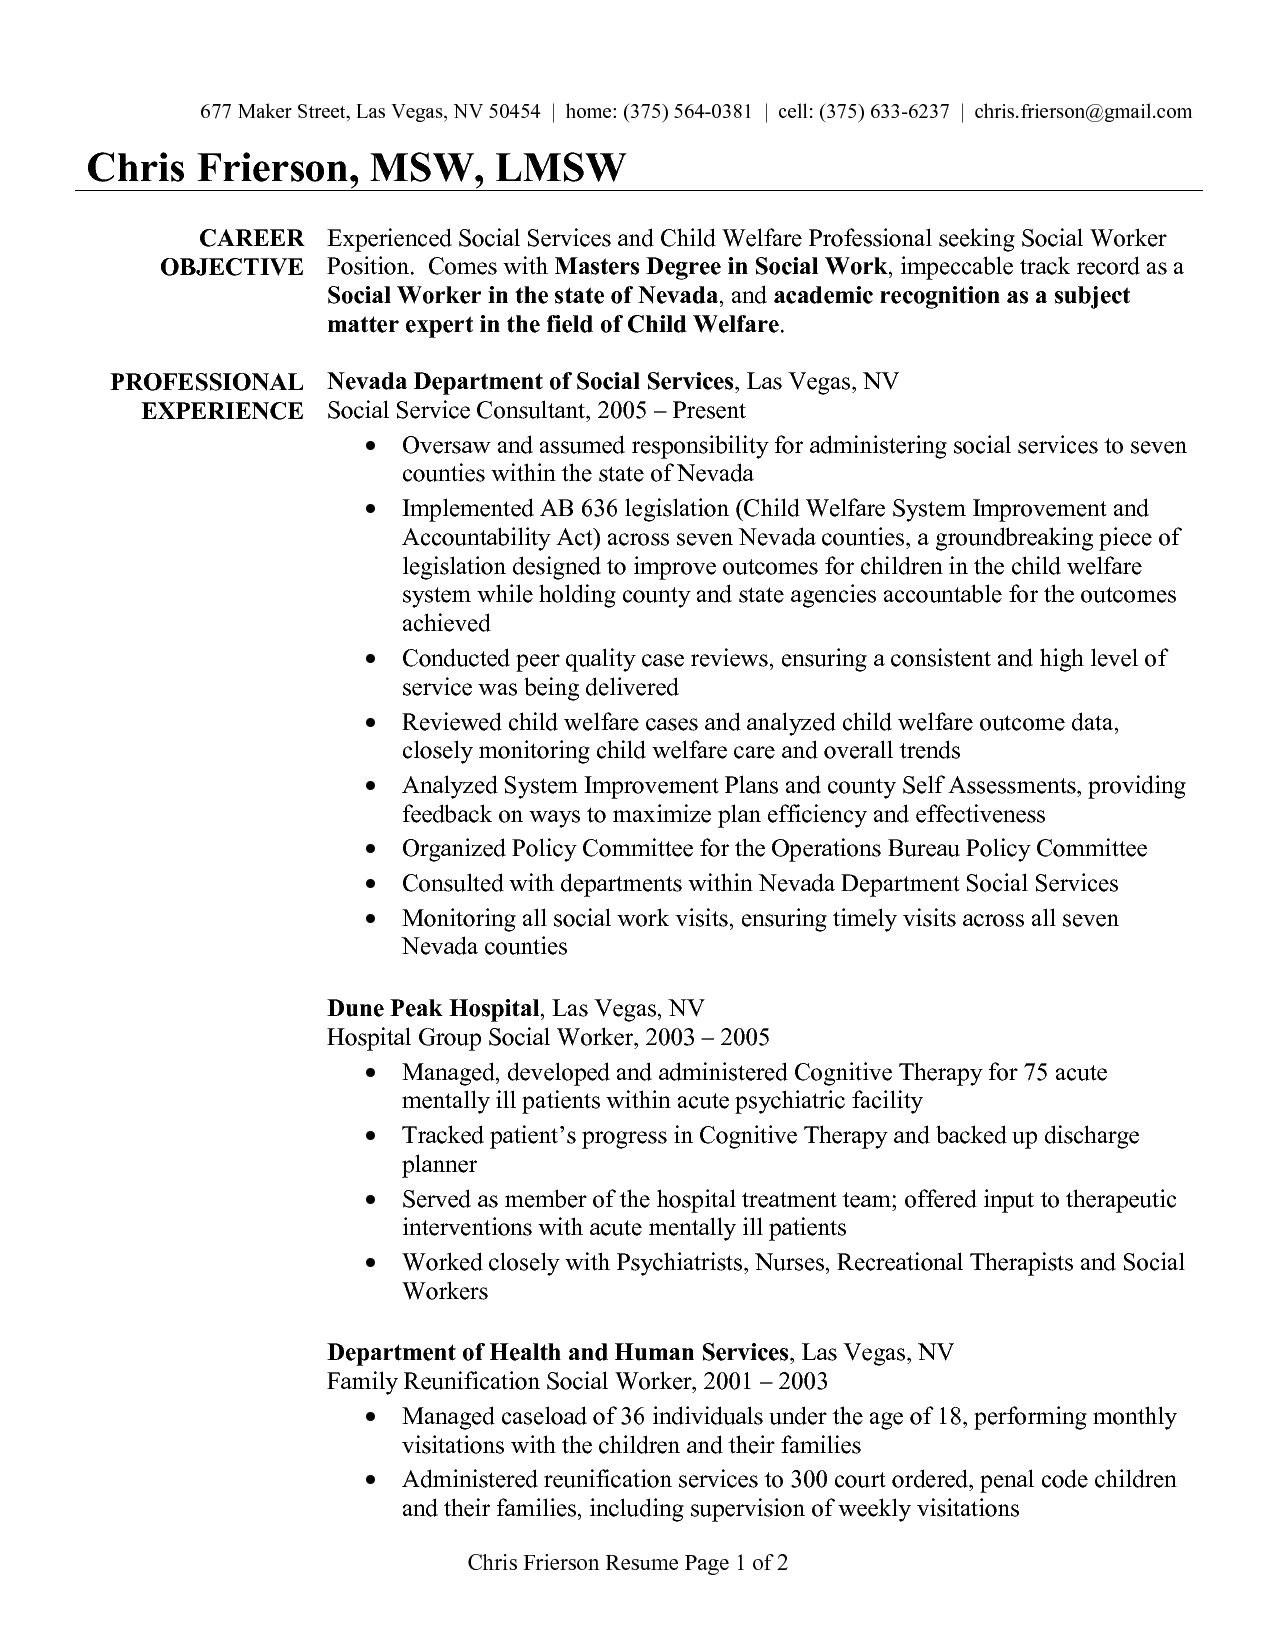 Social Worker Resume Sample by resume7 | Cover Latter Sample | Pinterest